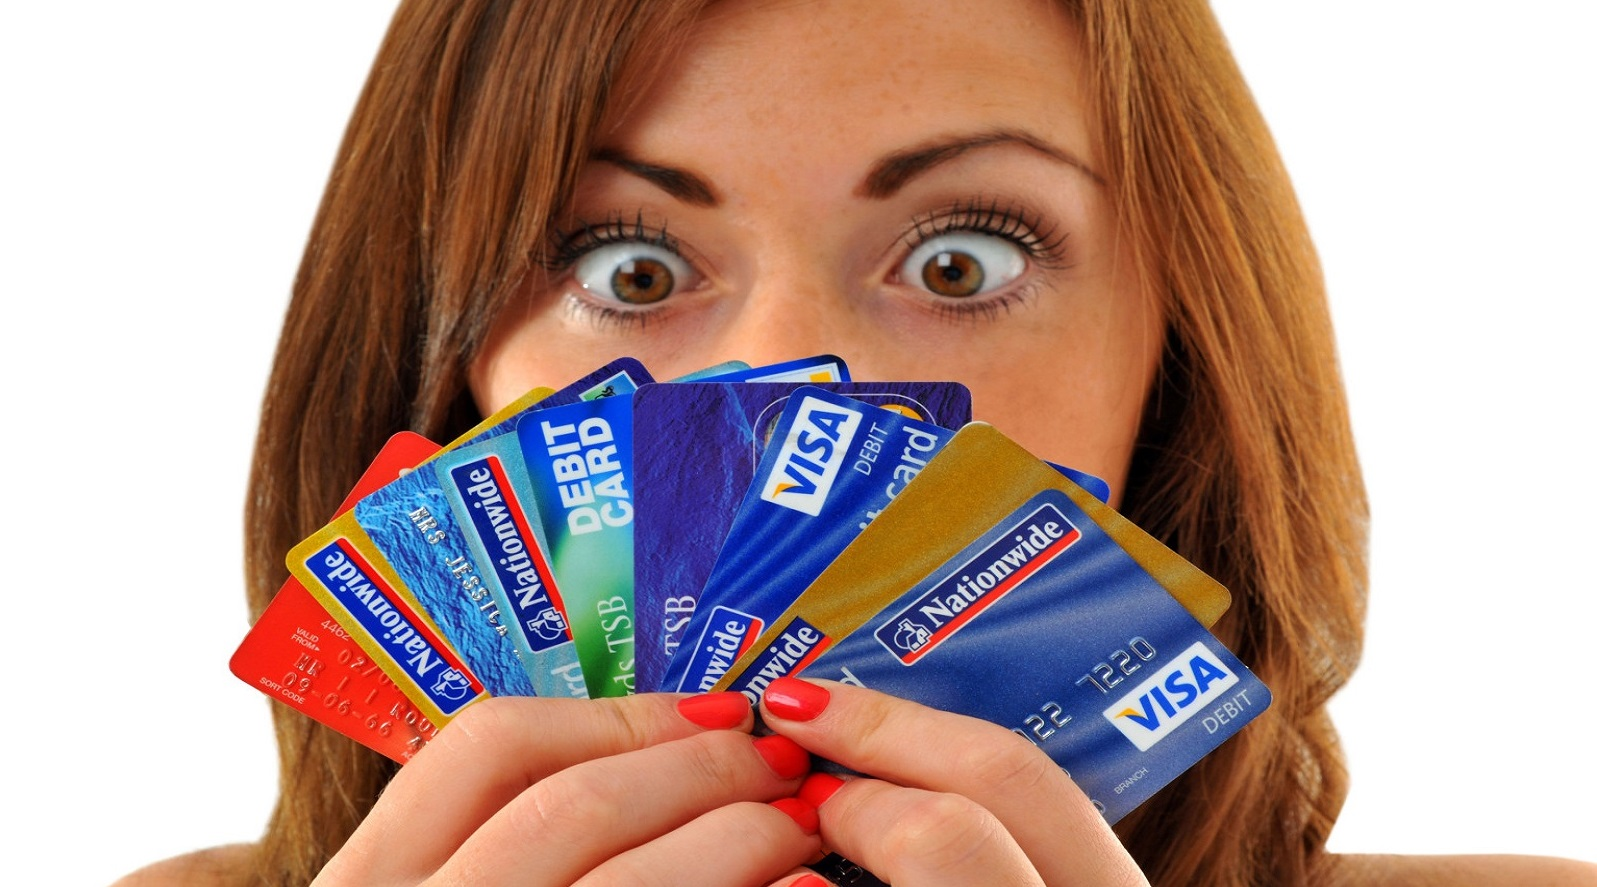 Credit Card Debt – How to Deal With Credit Card Debt